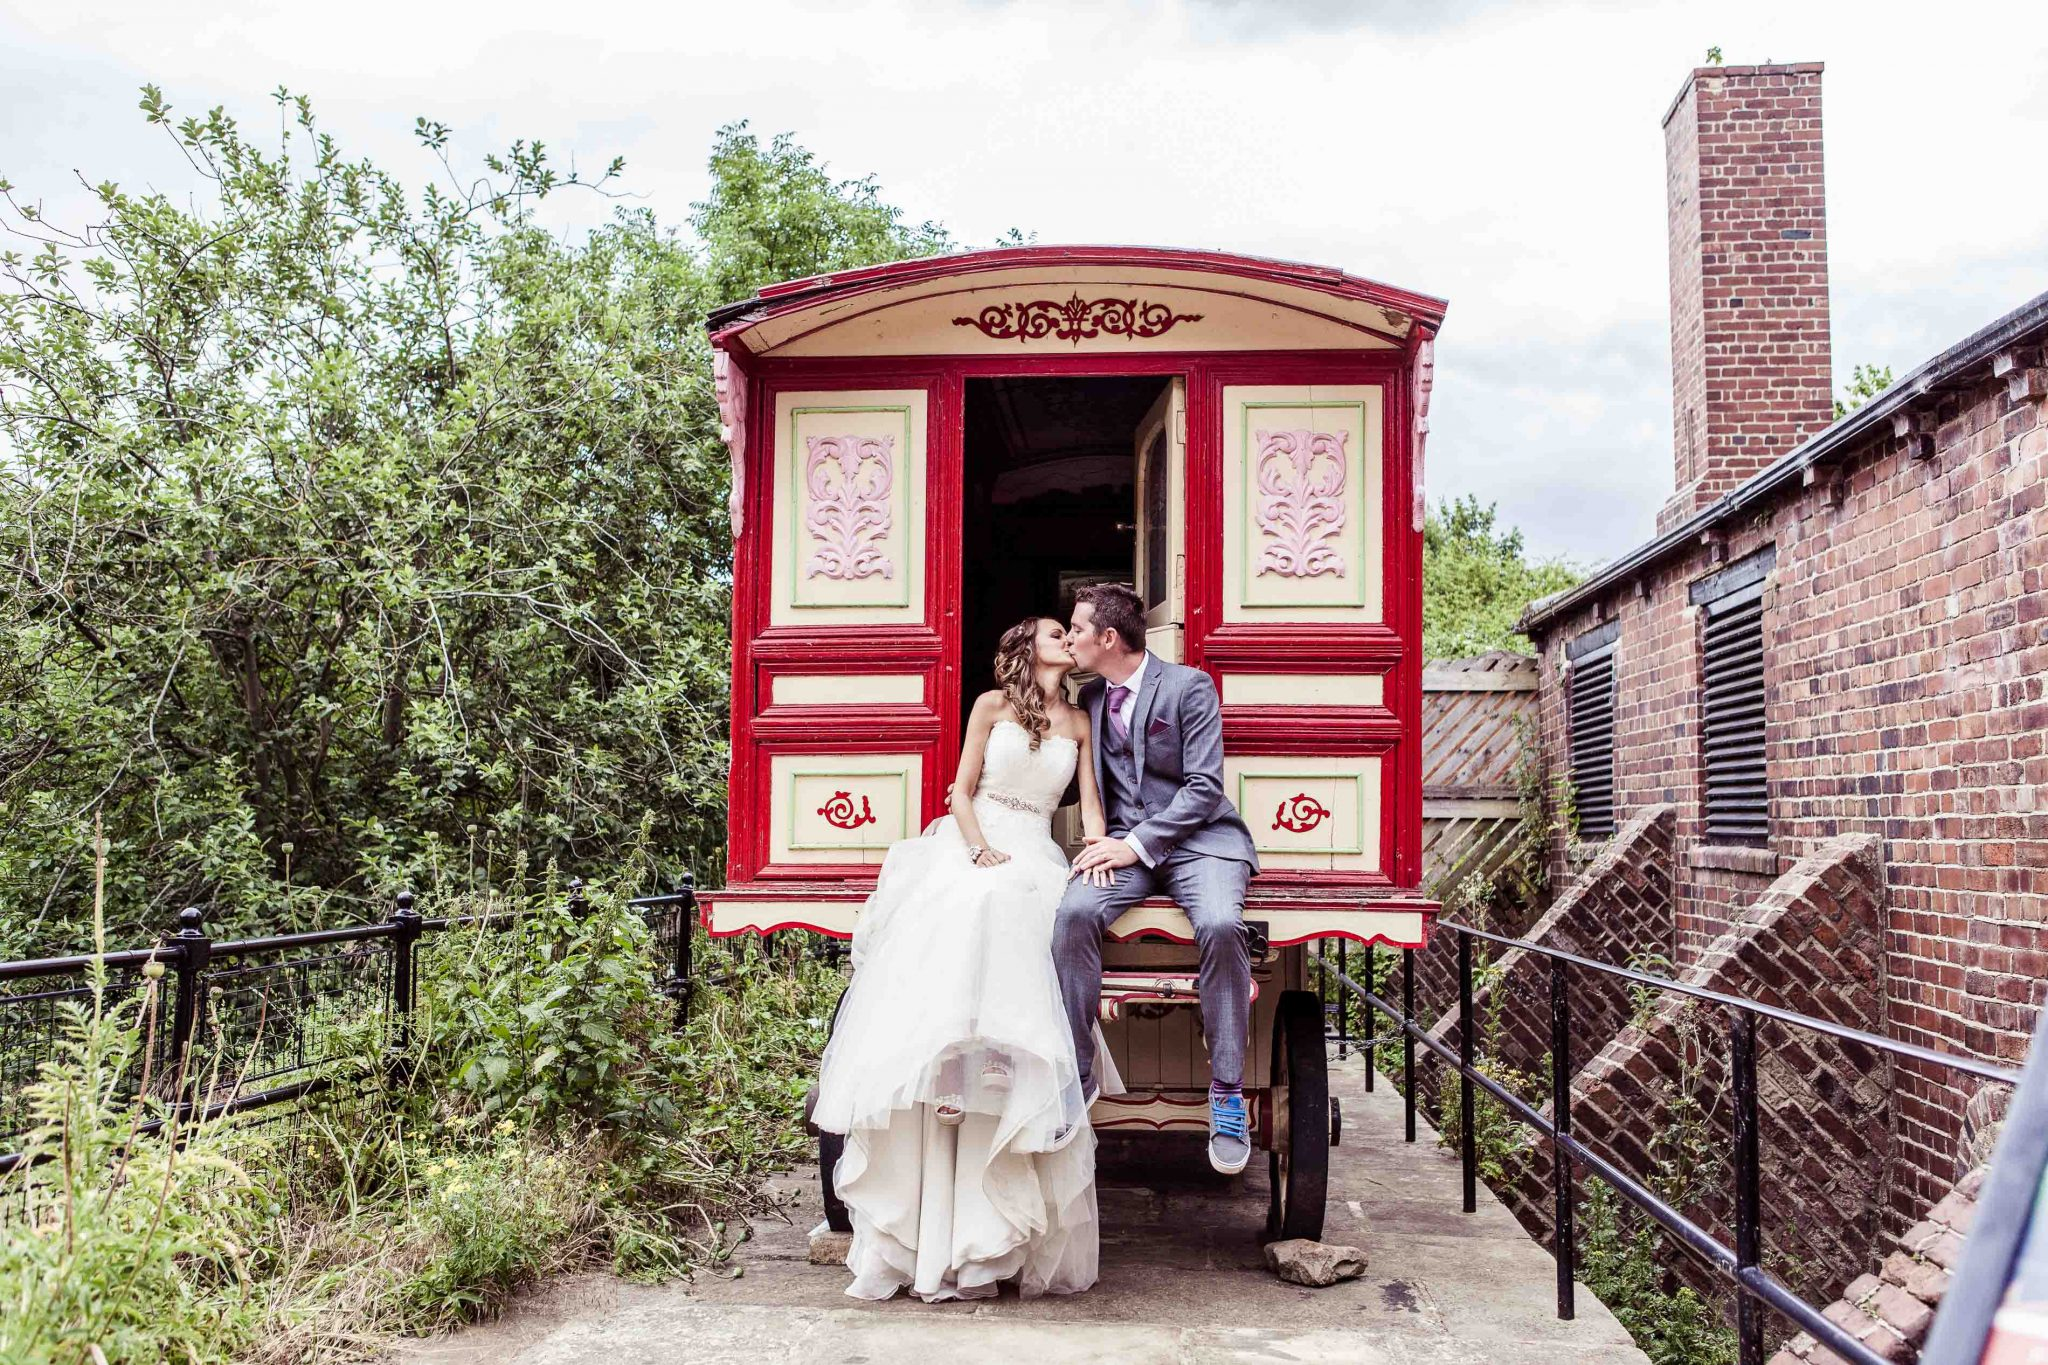 Bride and Groom kiss, seated on gypsy caravan wedding venue Thwaites Mills in Stourton Leeds wedding photography